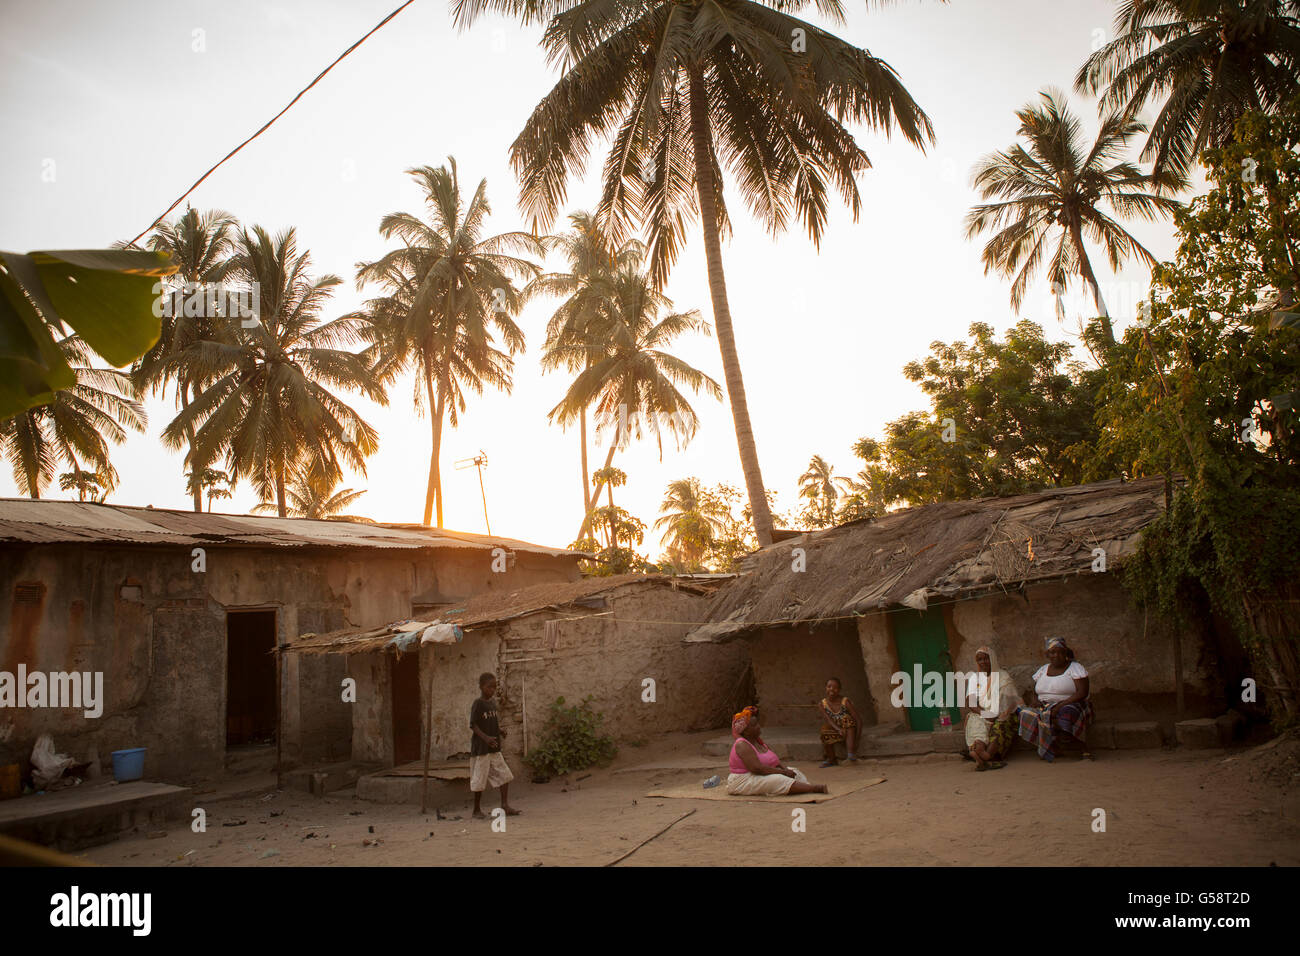 The sun sets over a suburban neighborhood in Nampula, Mozambique. - Stock Image